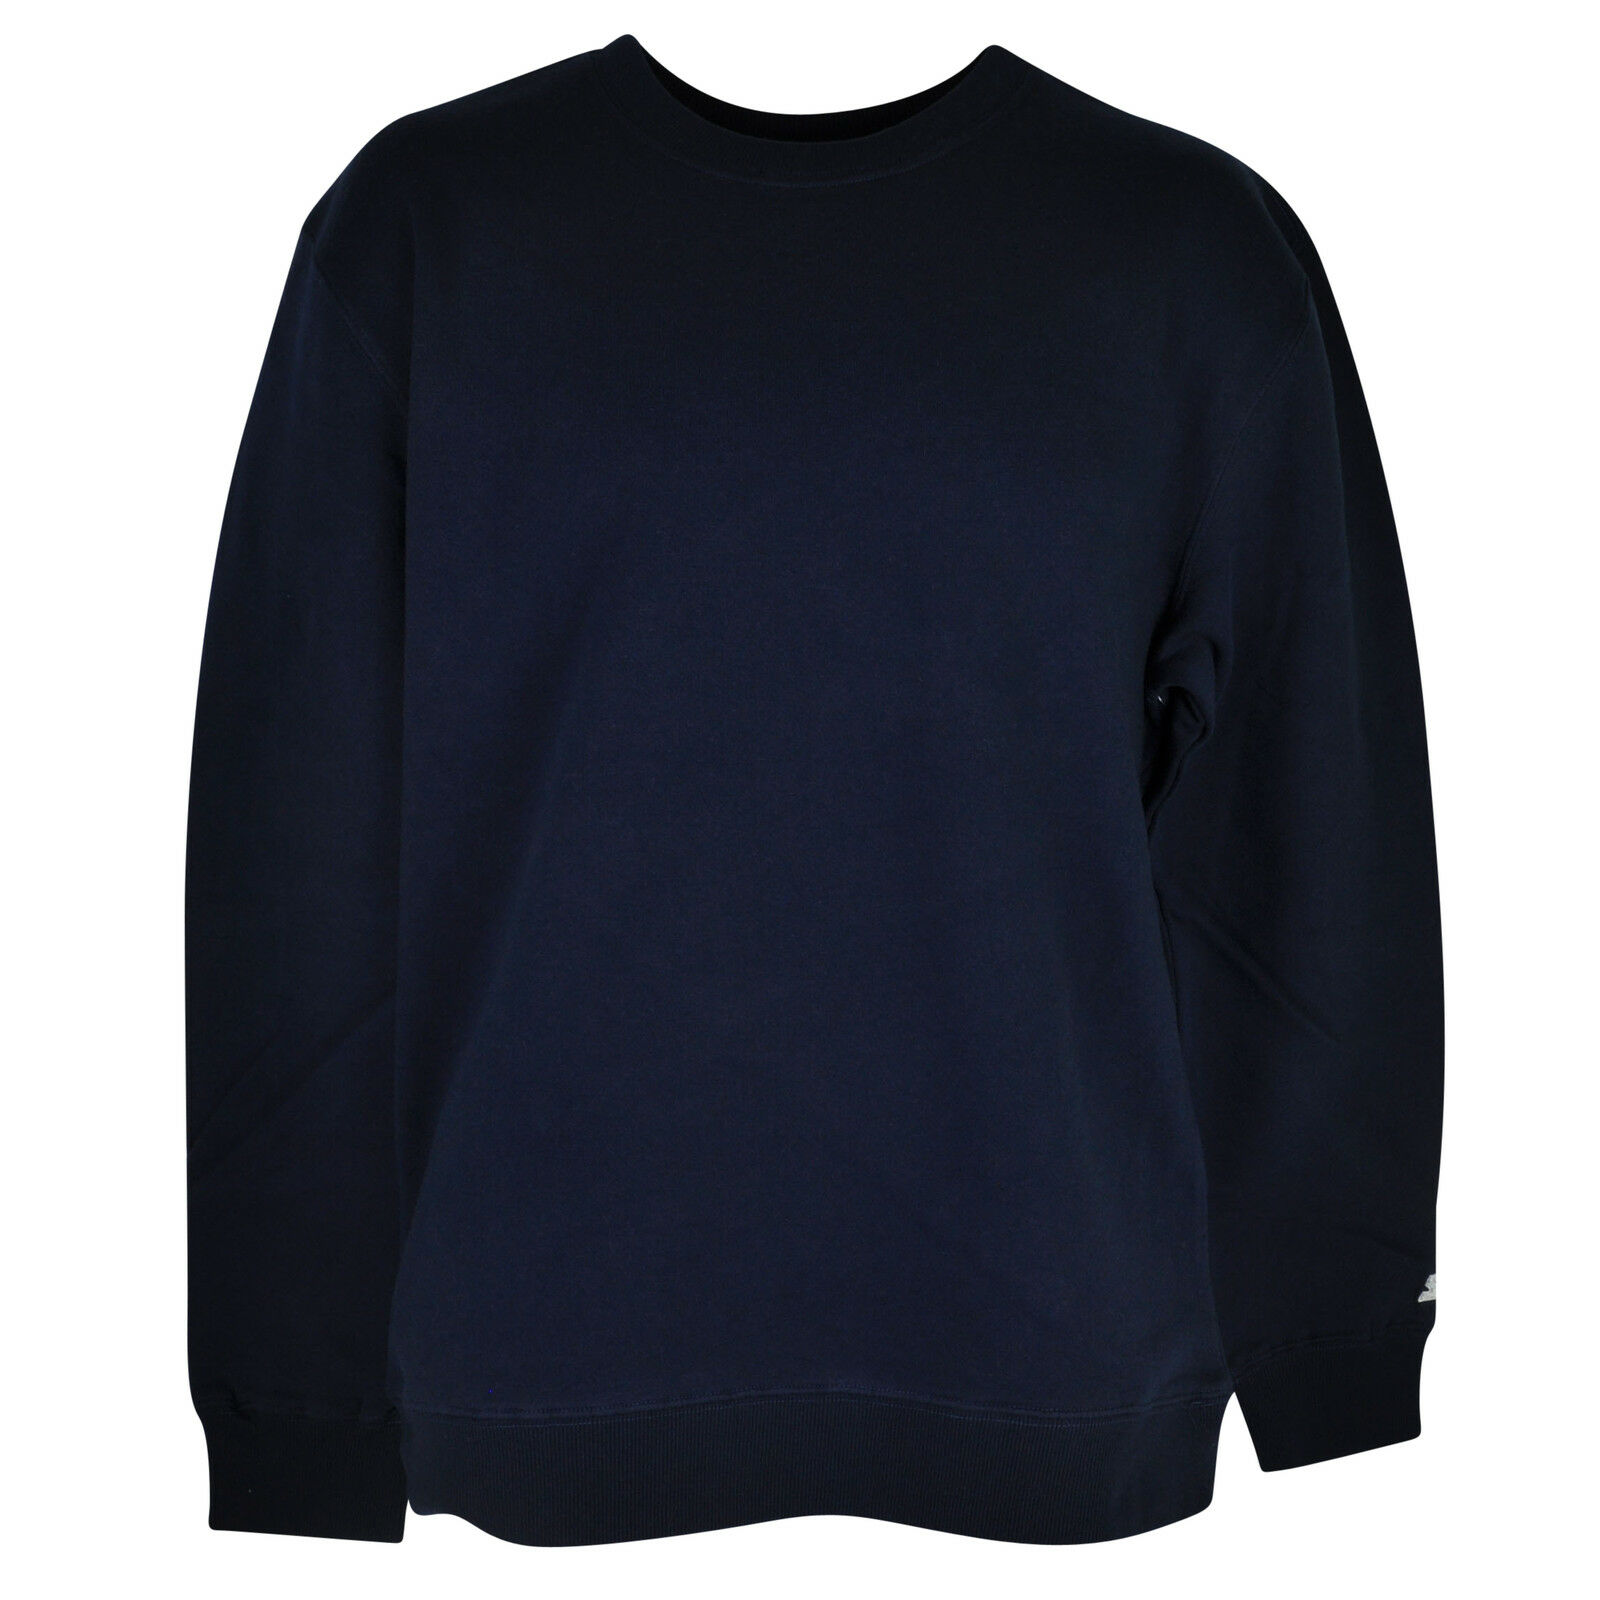 Starter Blank Plain Navy Blue Sweater Pullover Solid Mens Adult ...